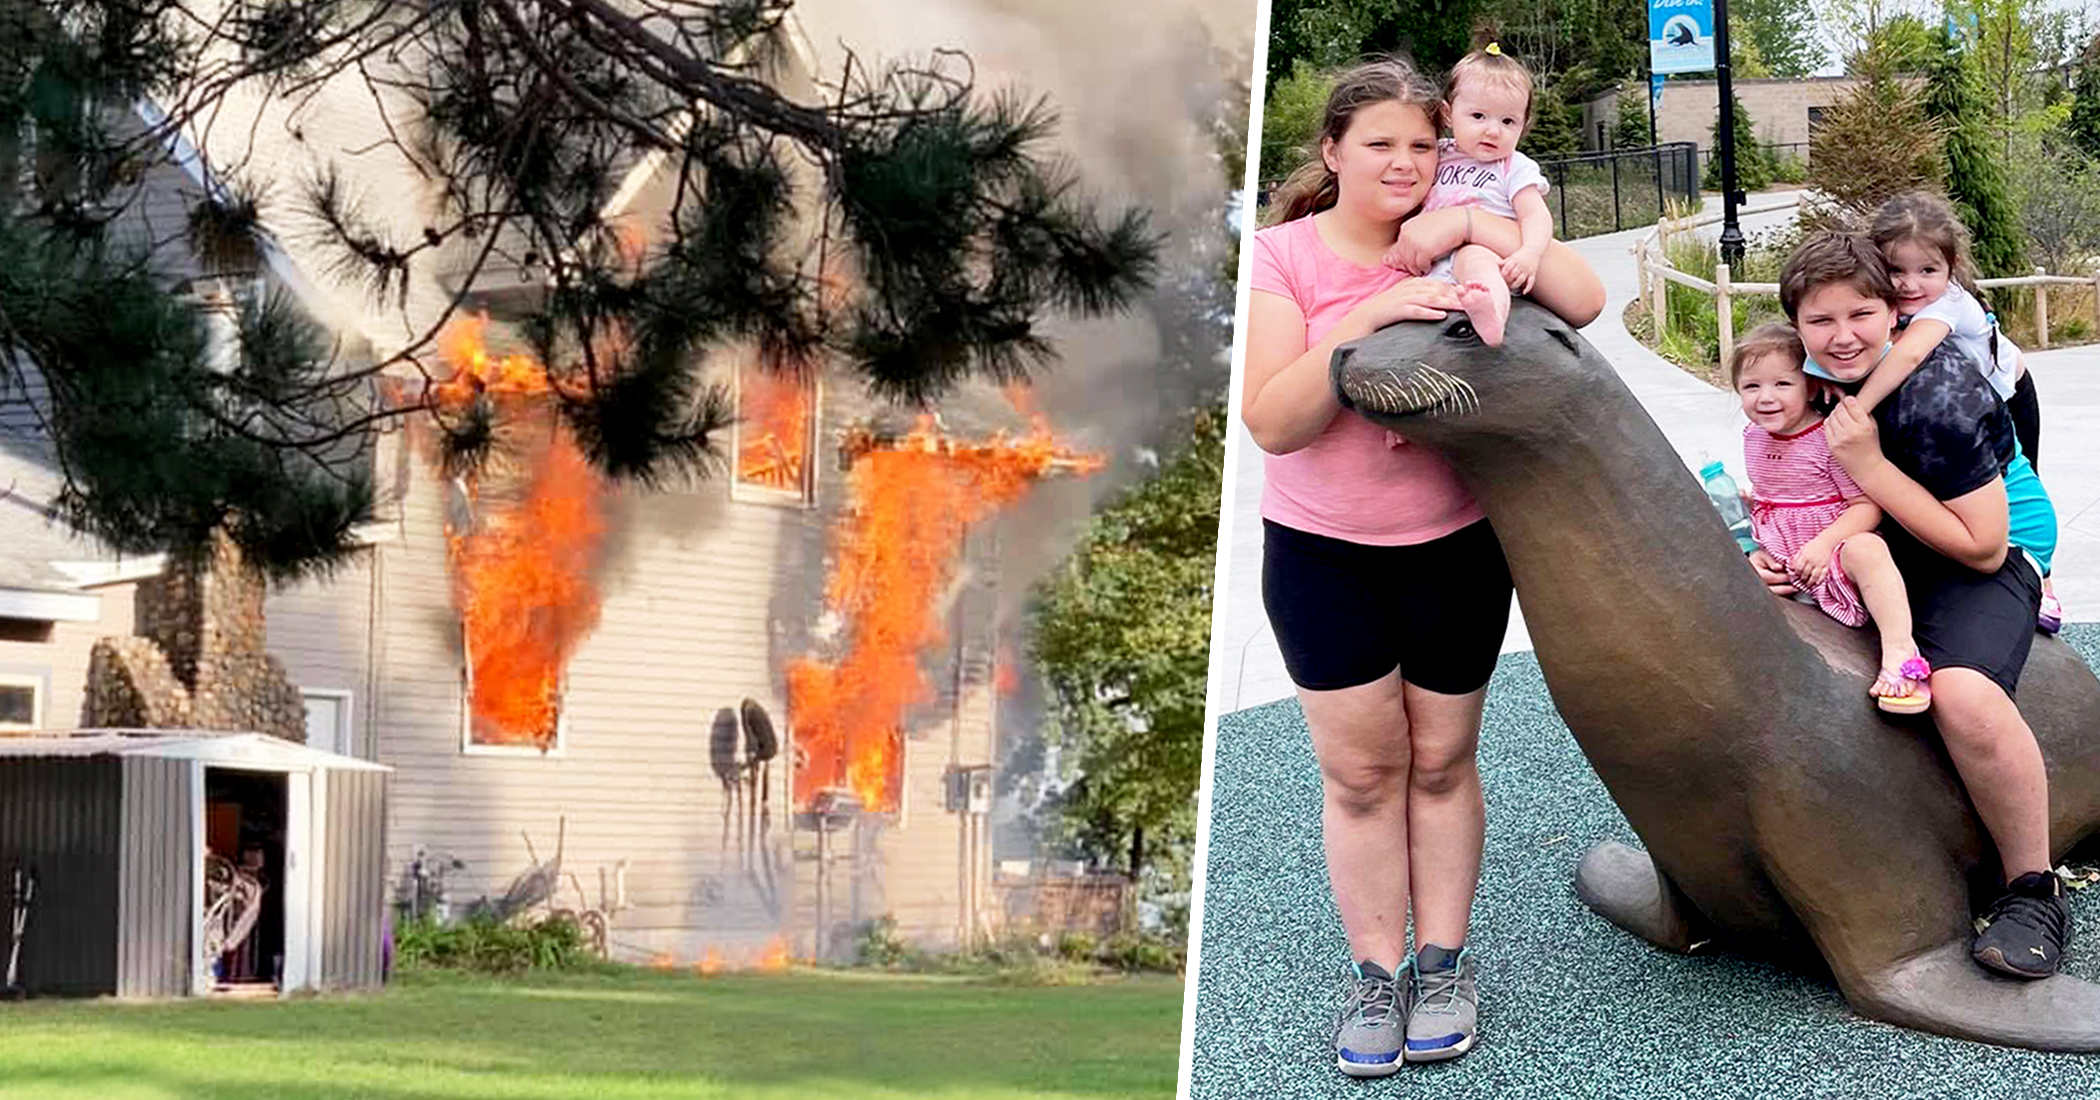 13-year-old boy home alone with 4 younger sisters saves siblings after house catches fire